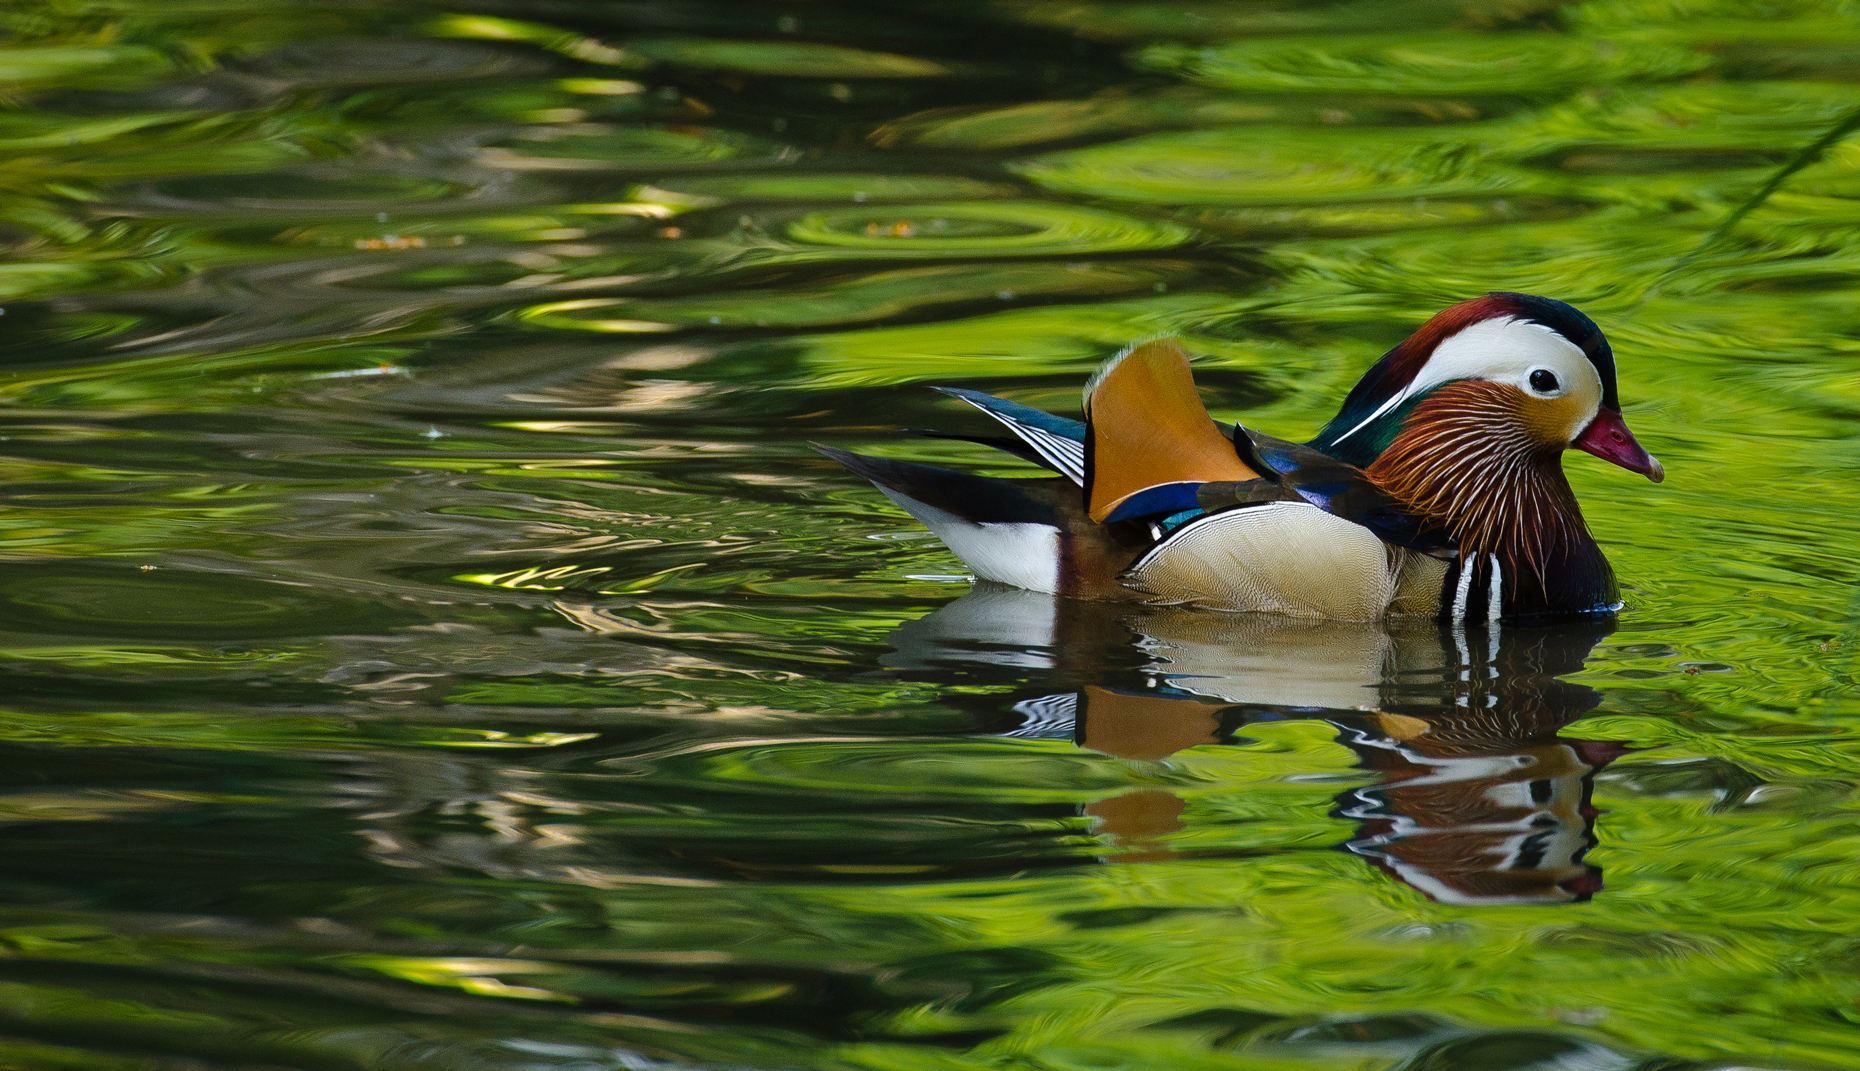 Birds-Duck-Impression-2-Laria-3792.jpg